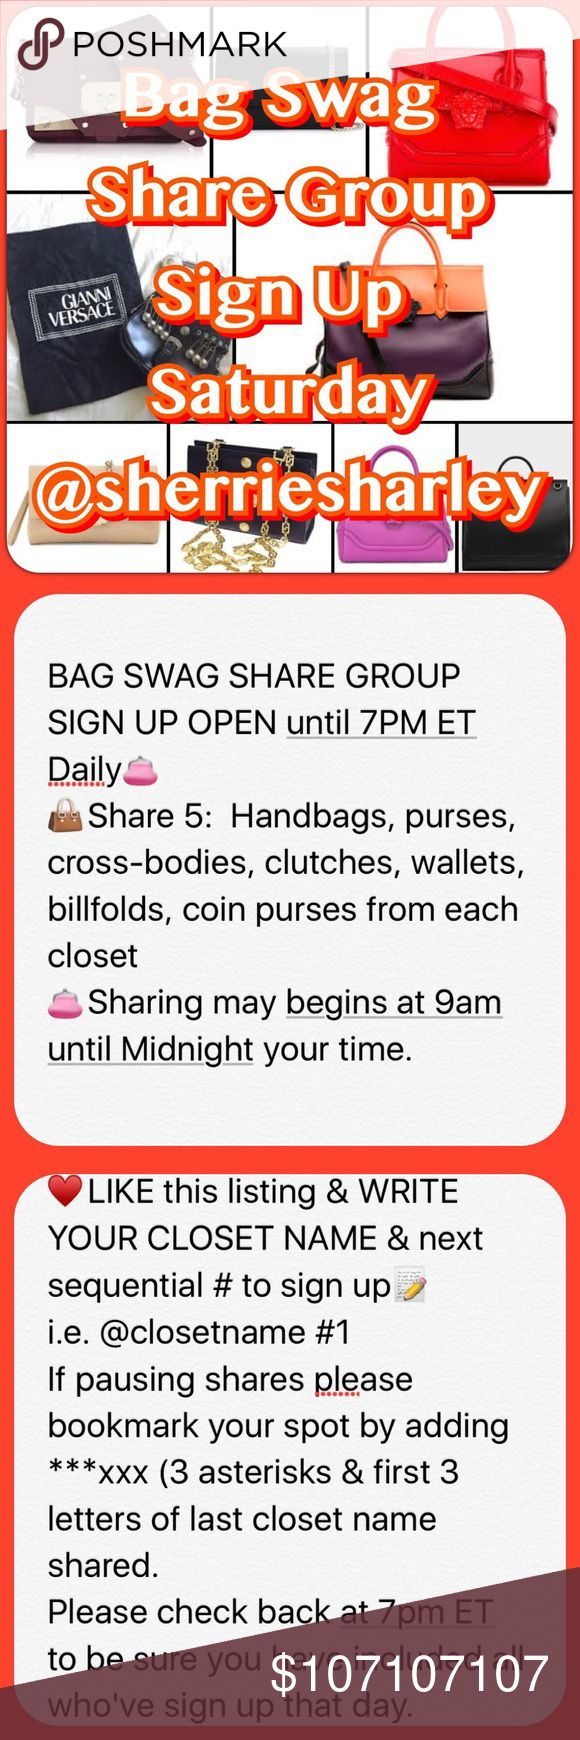 Bag swag share group Saturday 10/7 Daily BAG SWAG SHARE GROUP SIGN UP OPEN until 7PM ET👛 👜Share 5:  Handbags, purses, cross-bodies, clutches, wallets, billfolds, coin purses from each closet  👛Sharing may begin at 9am until Midnight your time. ♥️LIKE this listing & WRITE YOUR CLOSET NAME & next sequential # to sign up📝  i.e. @closetname #1 If pausing shares please bookmark your spot by adding ***abc (3 asterisks & first 3 letters of last closet name shared) Be sure you included all…